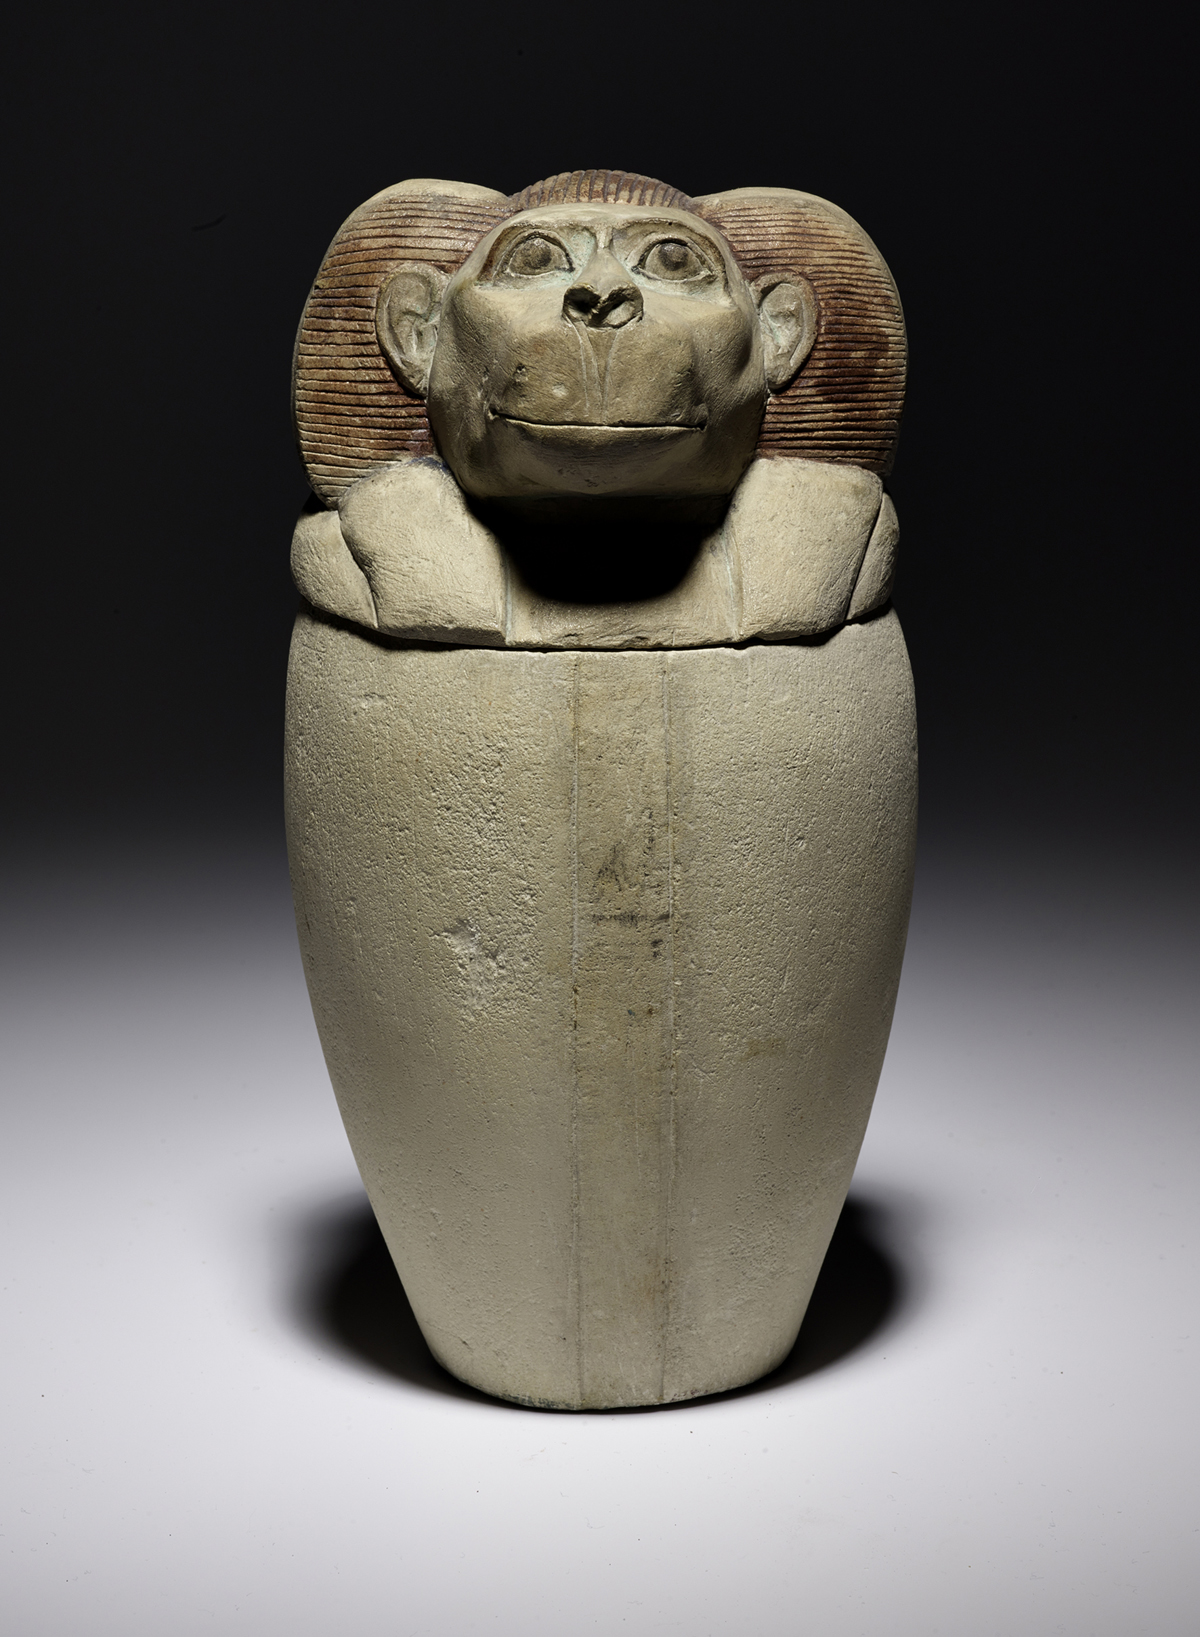 A.1885.135 - Canopic jar in white limestone, oviform in shape with a flat base: Ancient Egyptian, New Kingdom